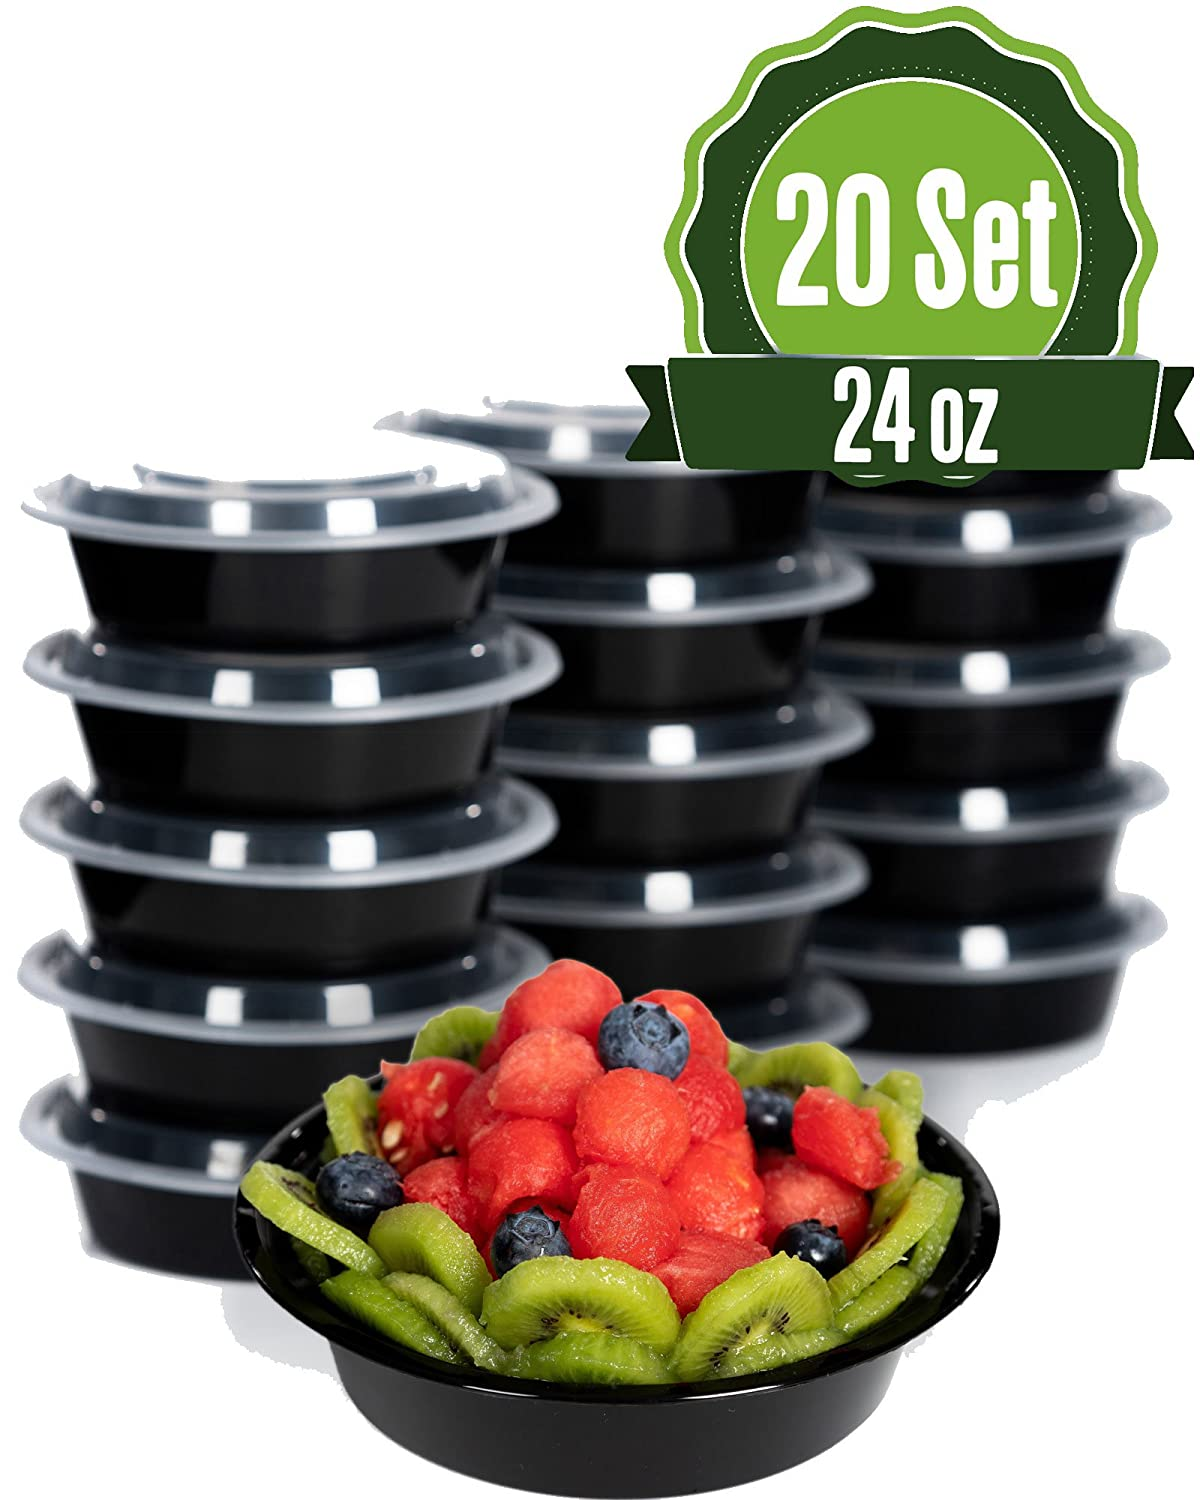 Meal Prep Food Storage Containers with Lids, Round 24 oz (20 Set) - BPA Free, Lunch Portion Control, Dishwasher, Freezer Safe, Microwavable, Reusable or Disposable Plastic Bento boxes